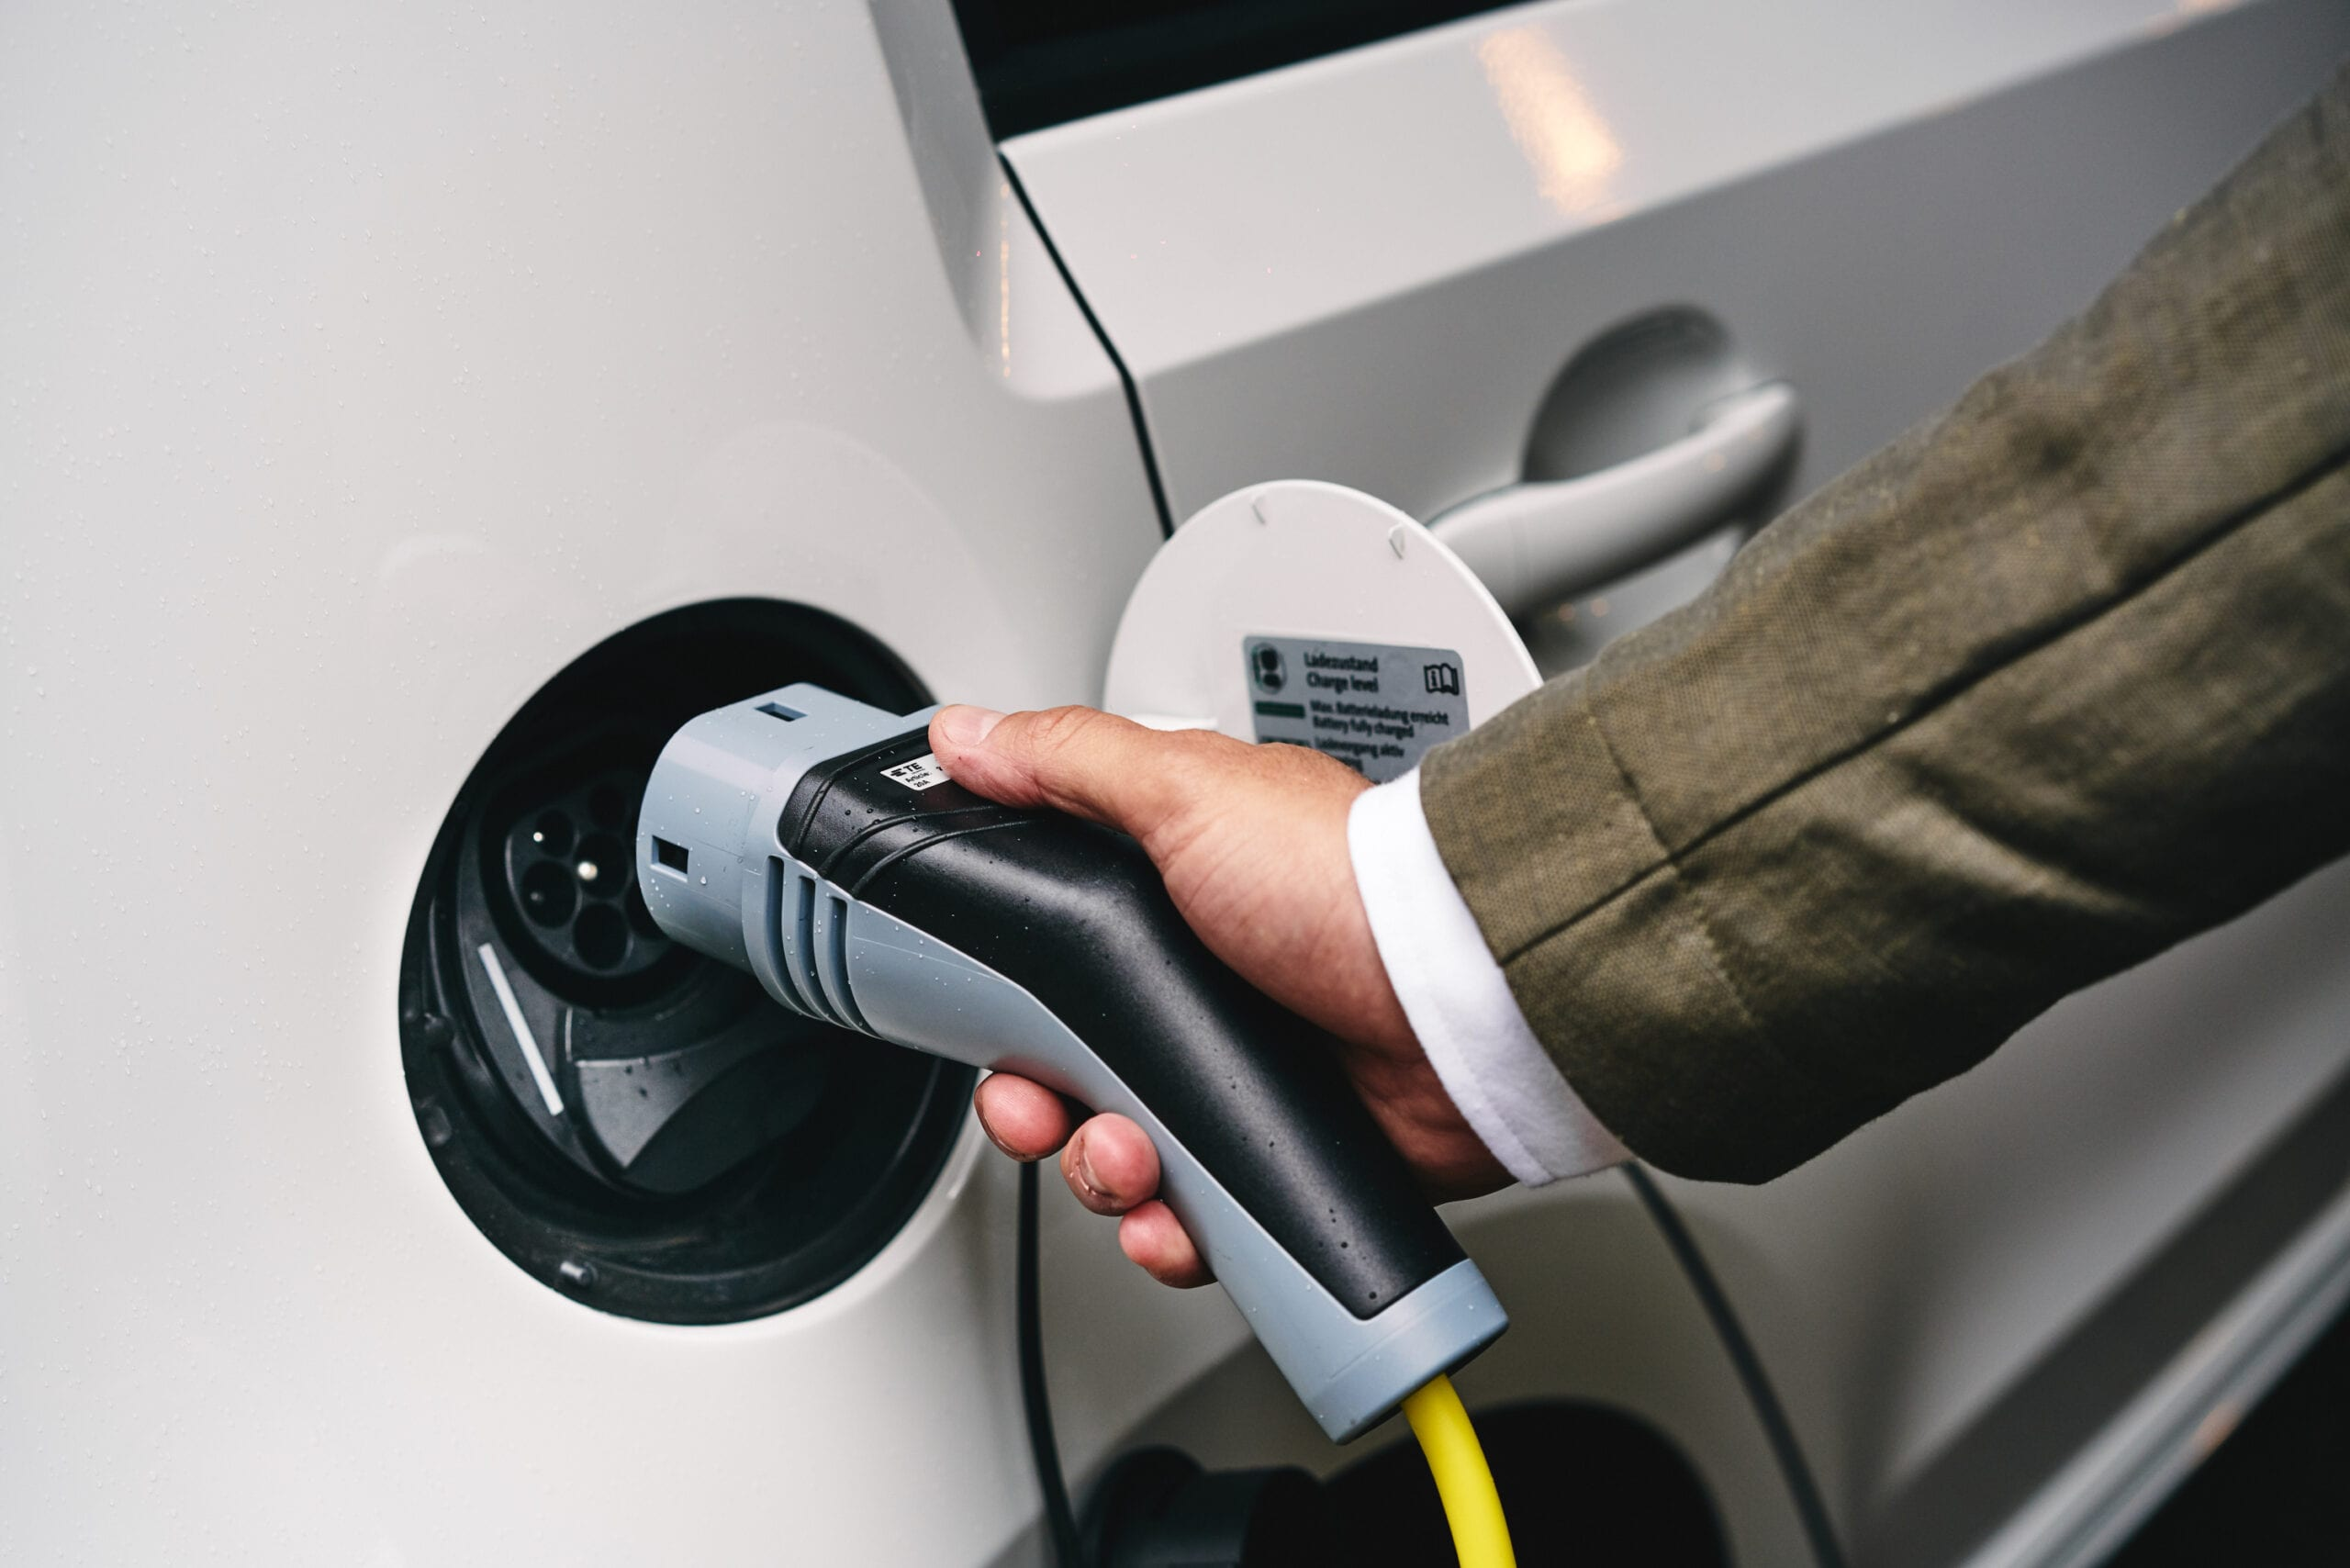 Plugging in charger to an electric vehicle